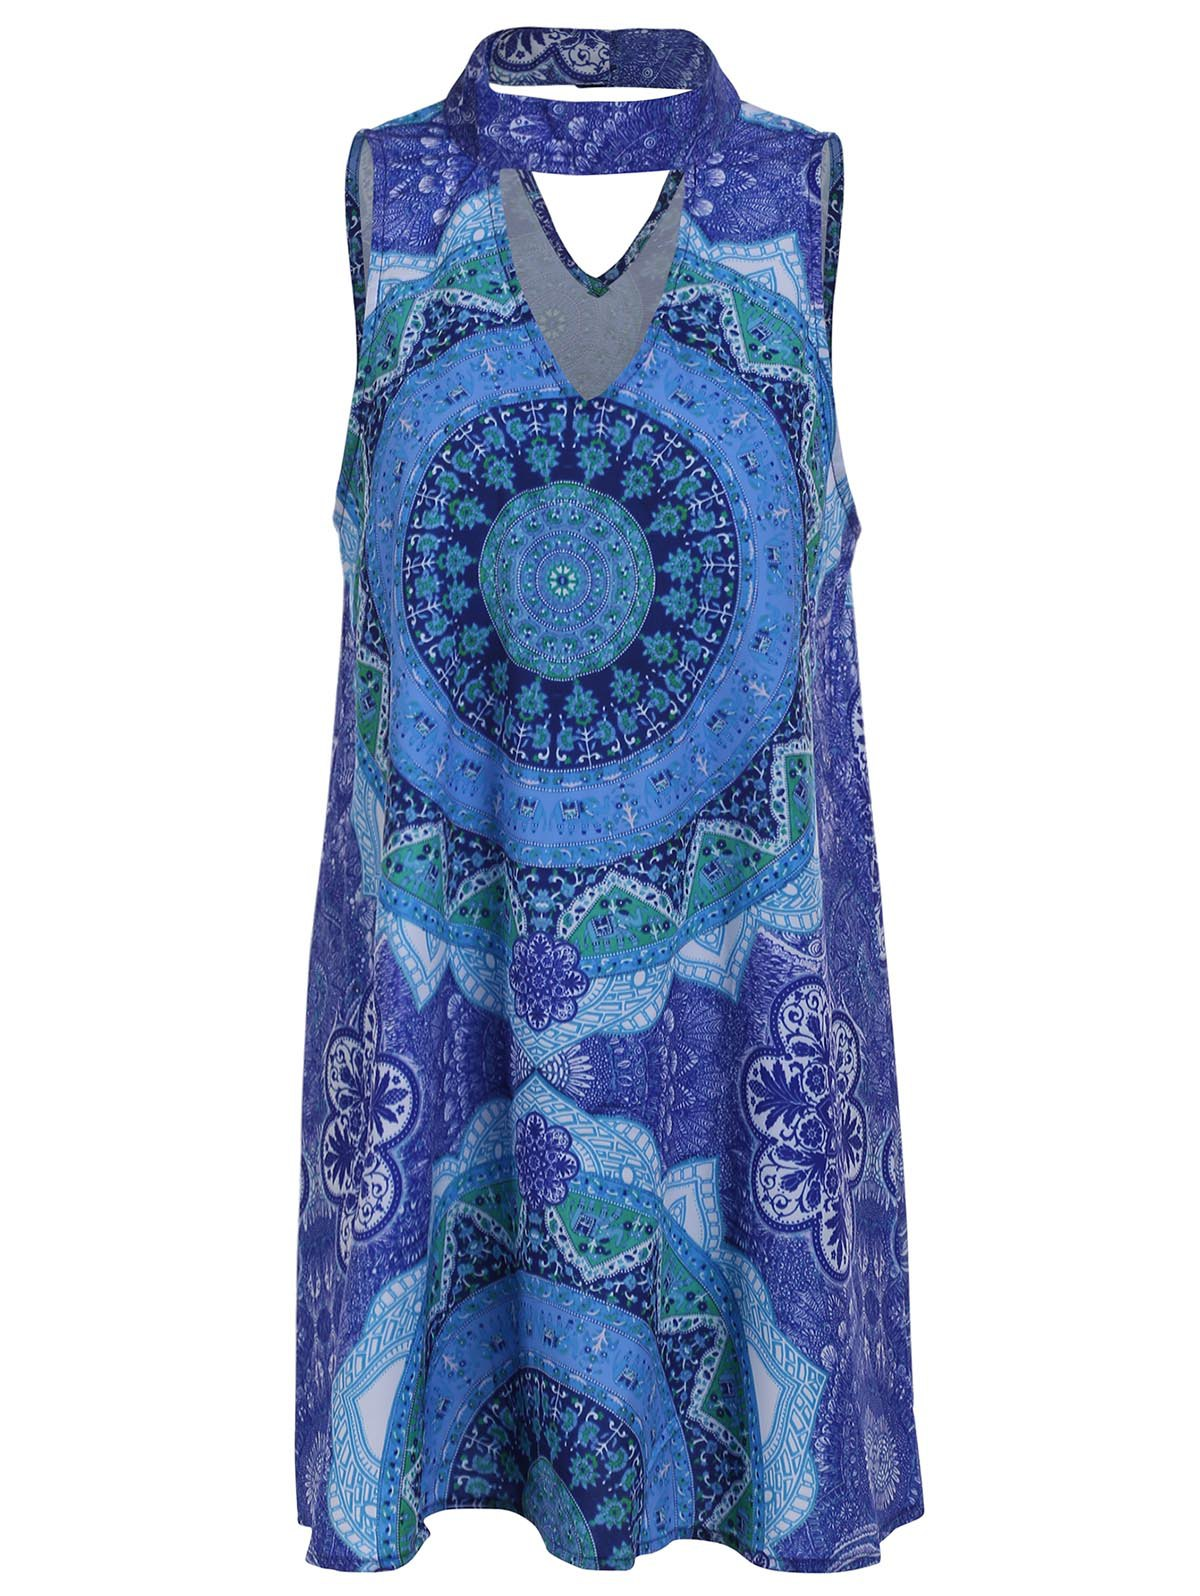 Retro Style Sleeveless Stand Collar Hollow Out Printed Women's Dress - COLORMIX M